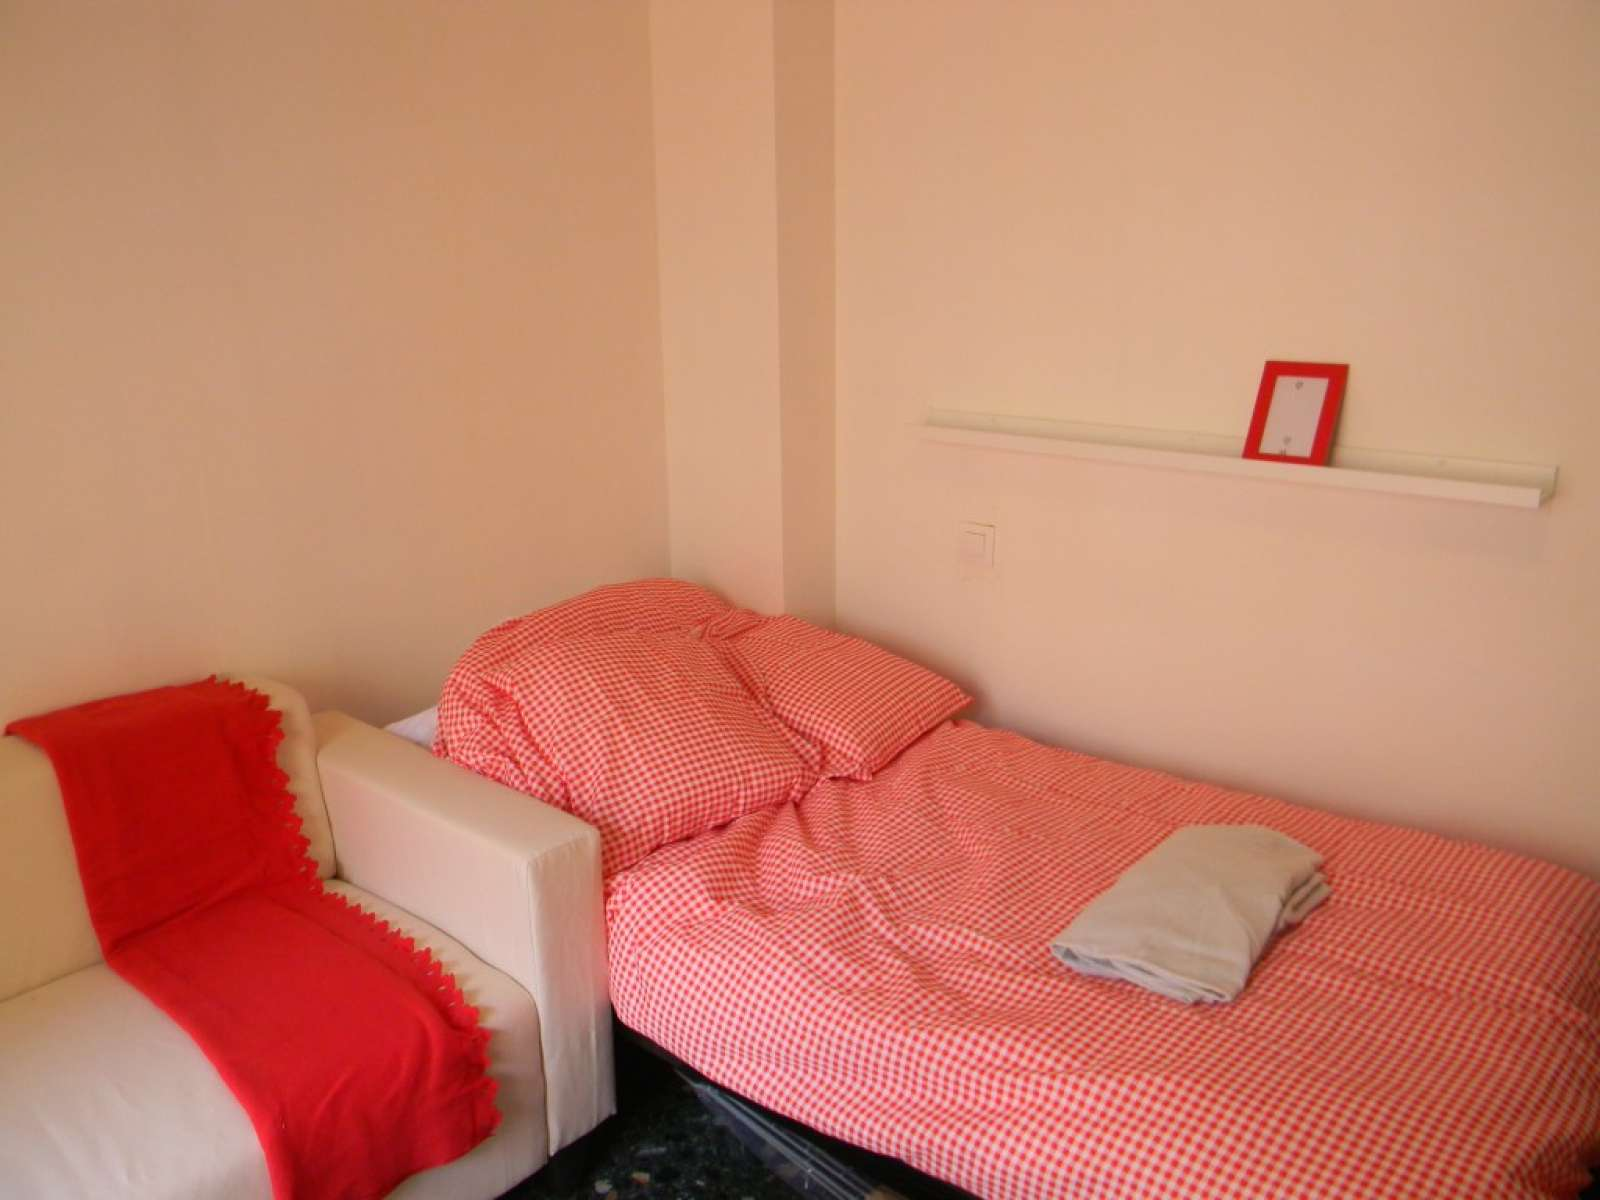 Nicely Decorated Bedrooms Double Bed In Nicely Decorated Rooms For Rent Close To The